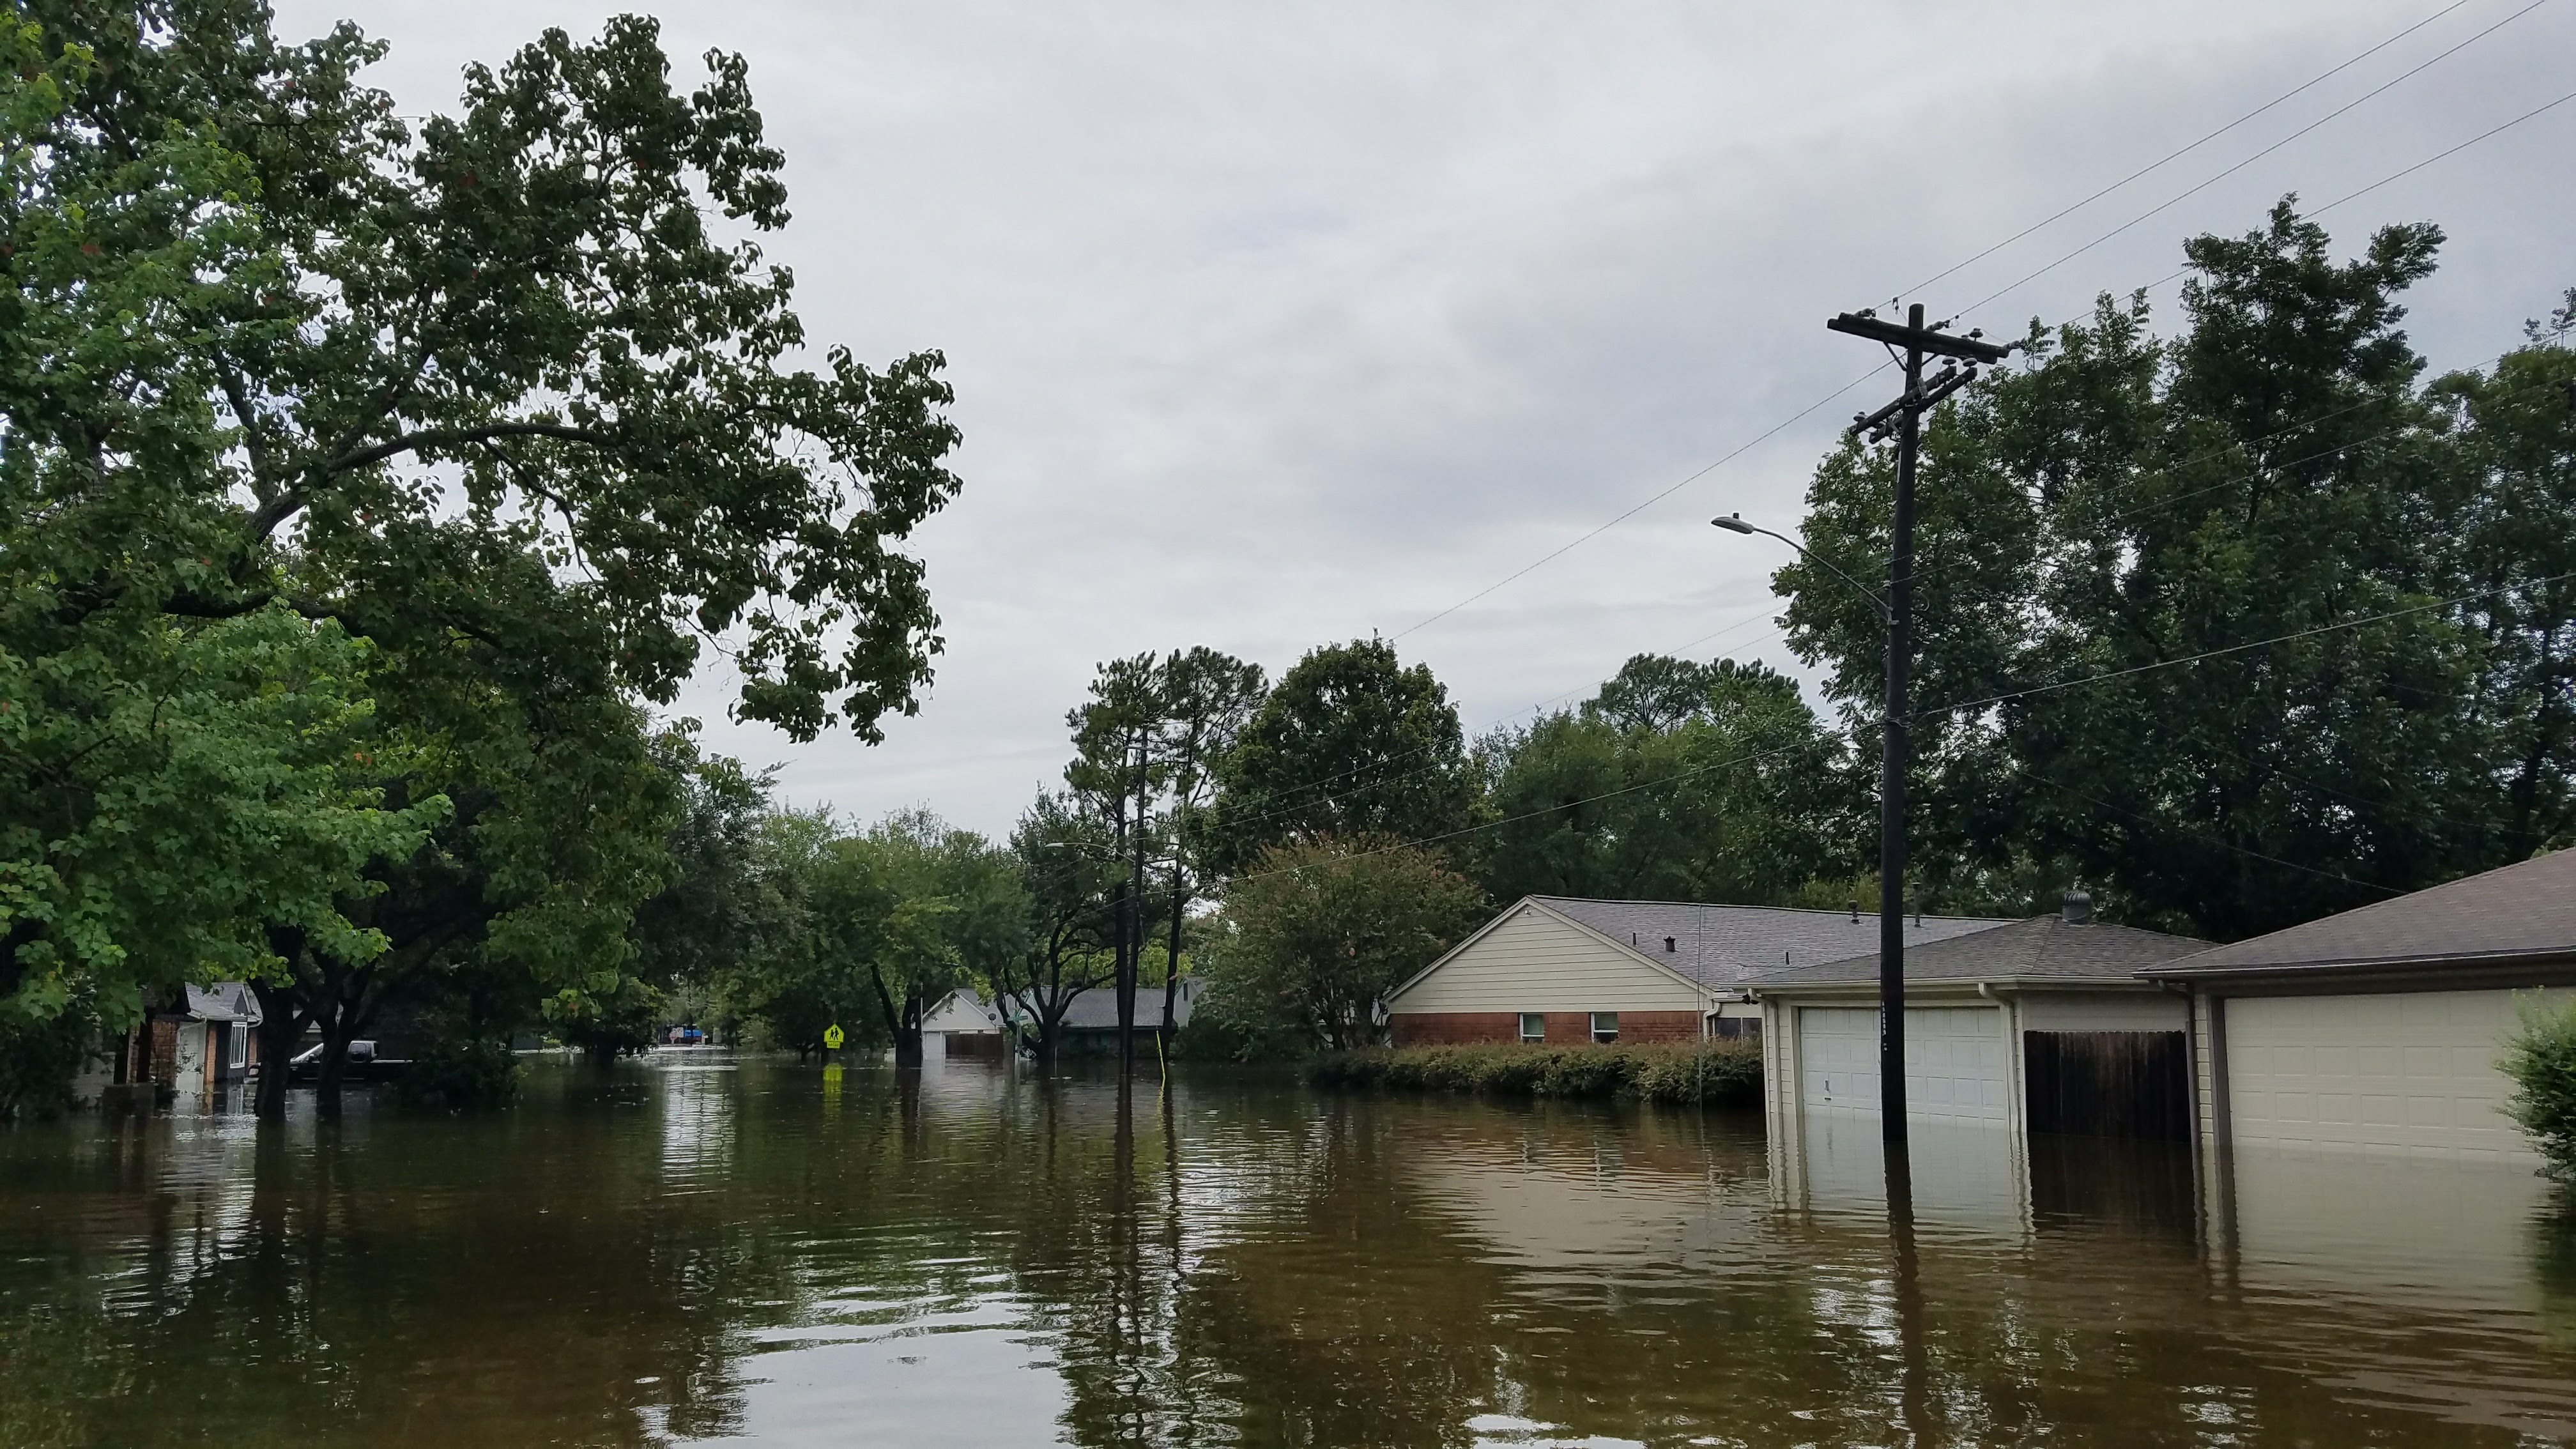 Westbudy/Meyerland Area During Harvey